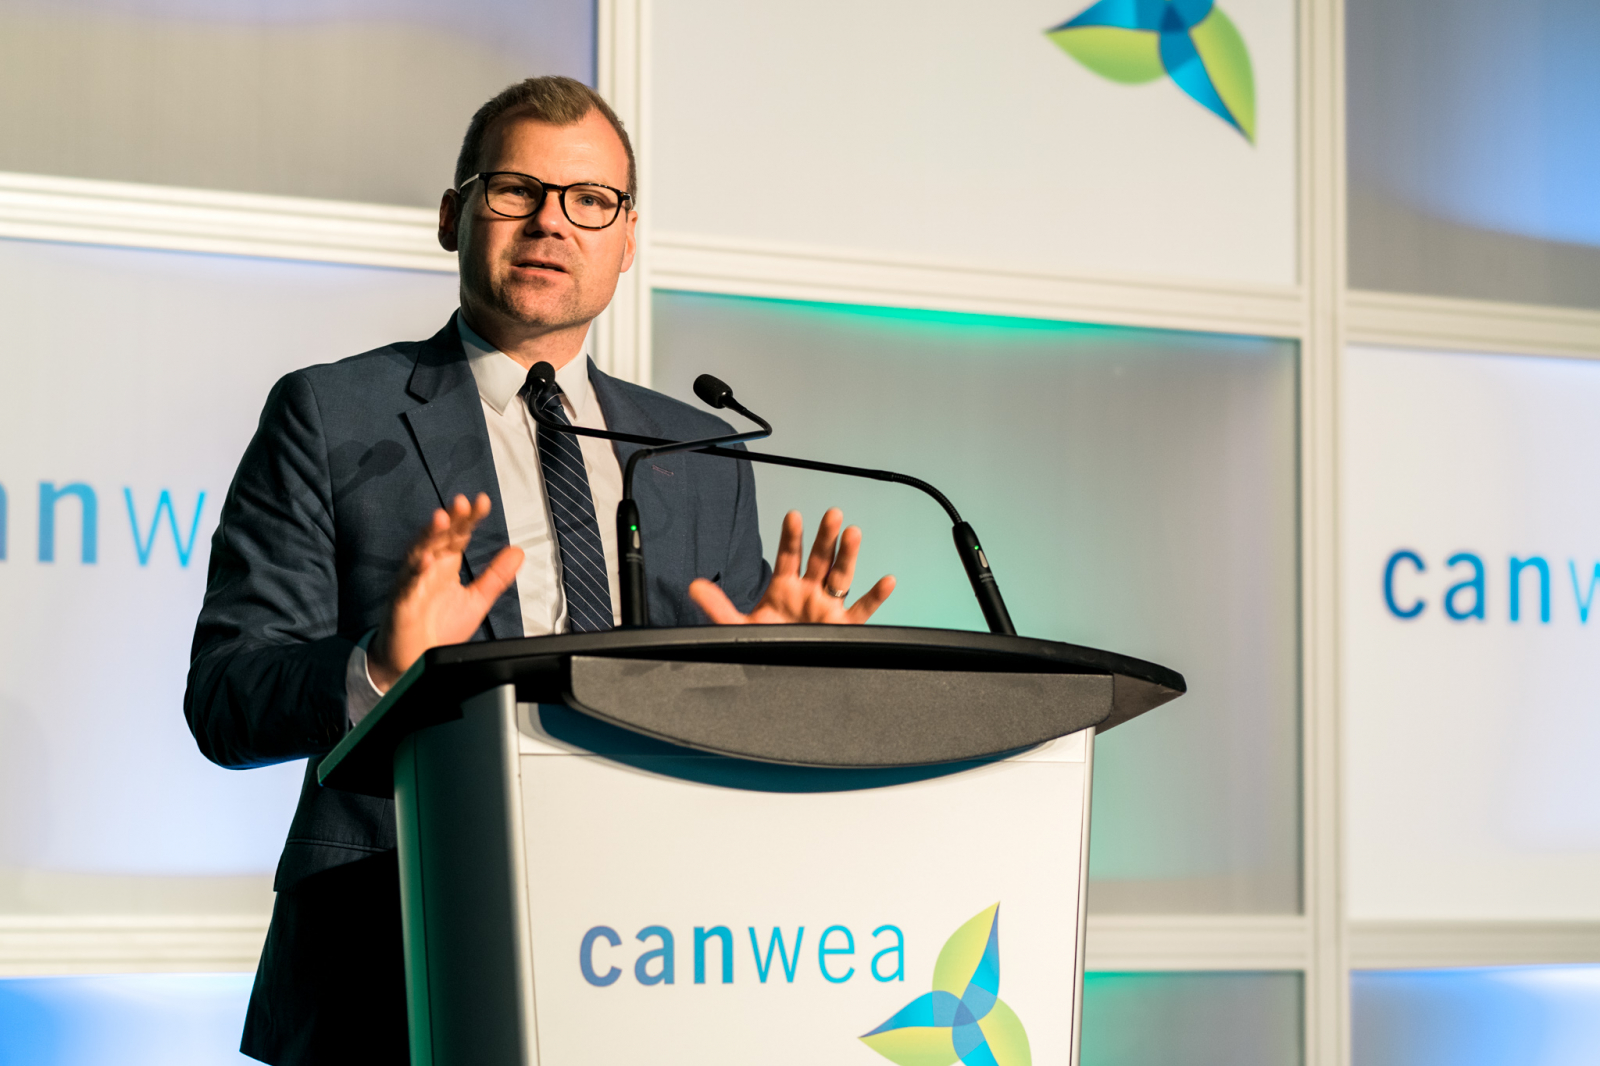 Dustin Duncan, Saskatchewan Minister of Energy and Resources and Minister responsible for SaskTel and SaskEnergy, at a CanWEA conference in Calgary on Oct. 24, 2018. Photo by Louie Villanueva